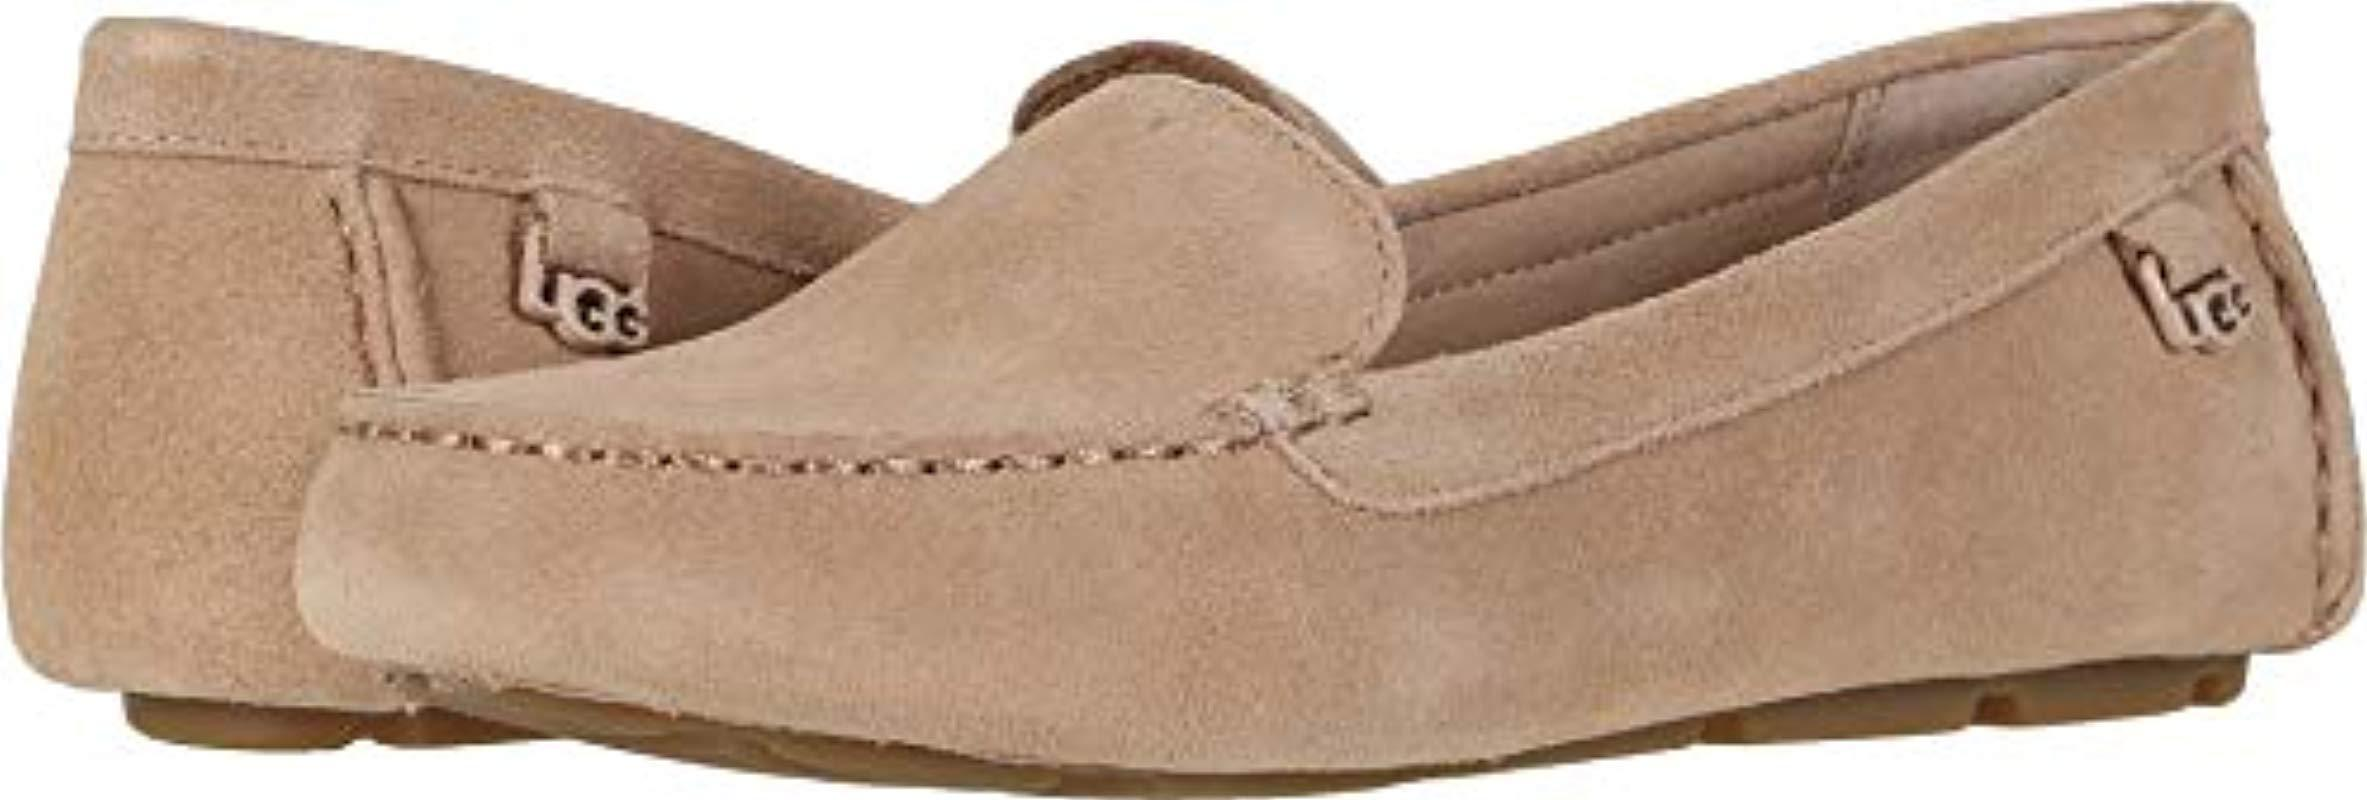 d1859ea11f8 Women's Natural Flores Driving Style Loafer